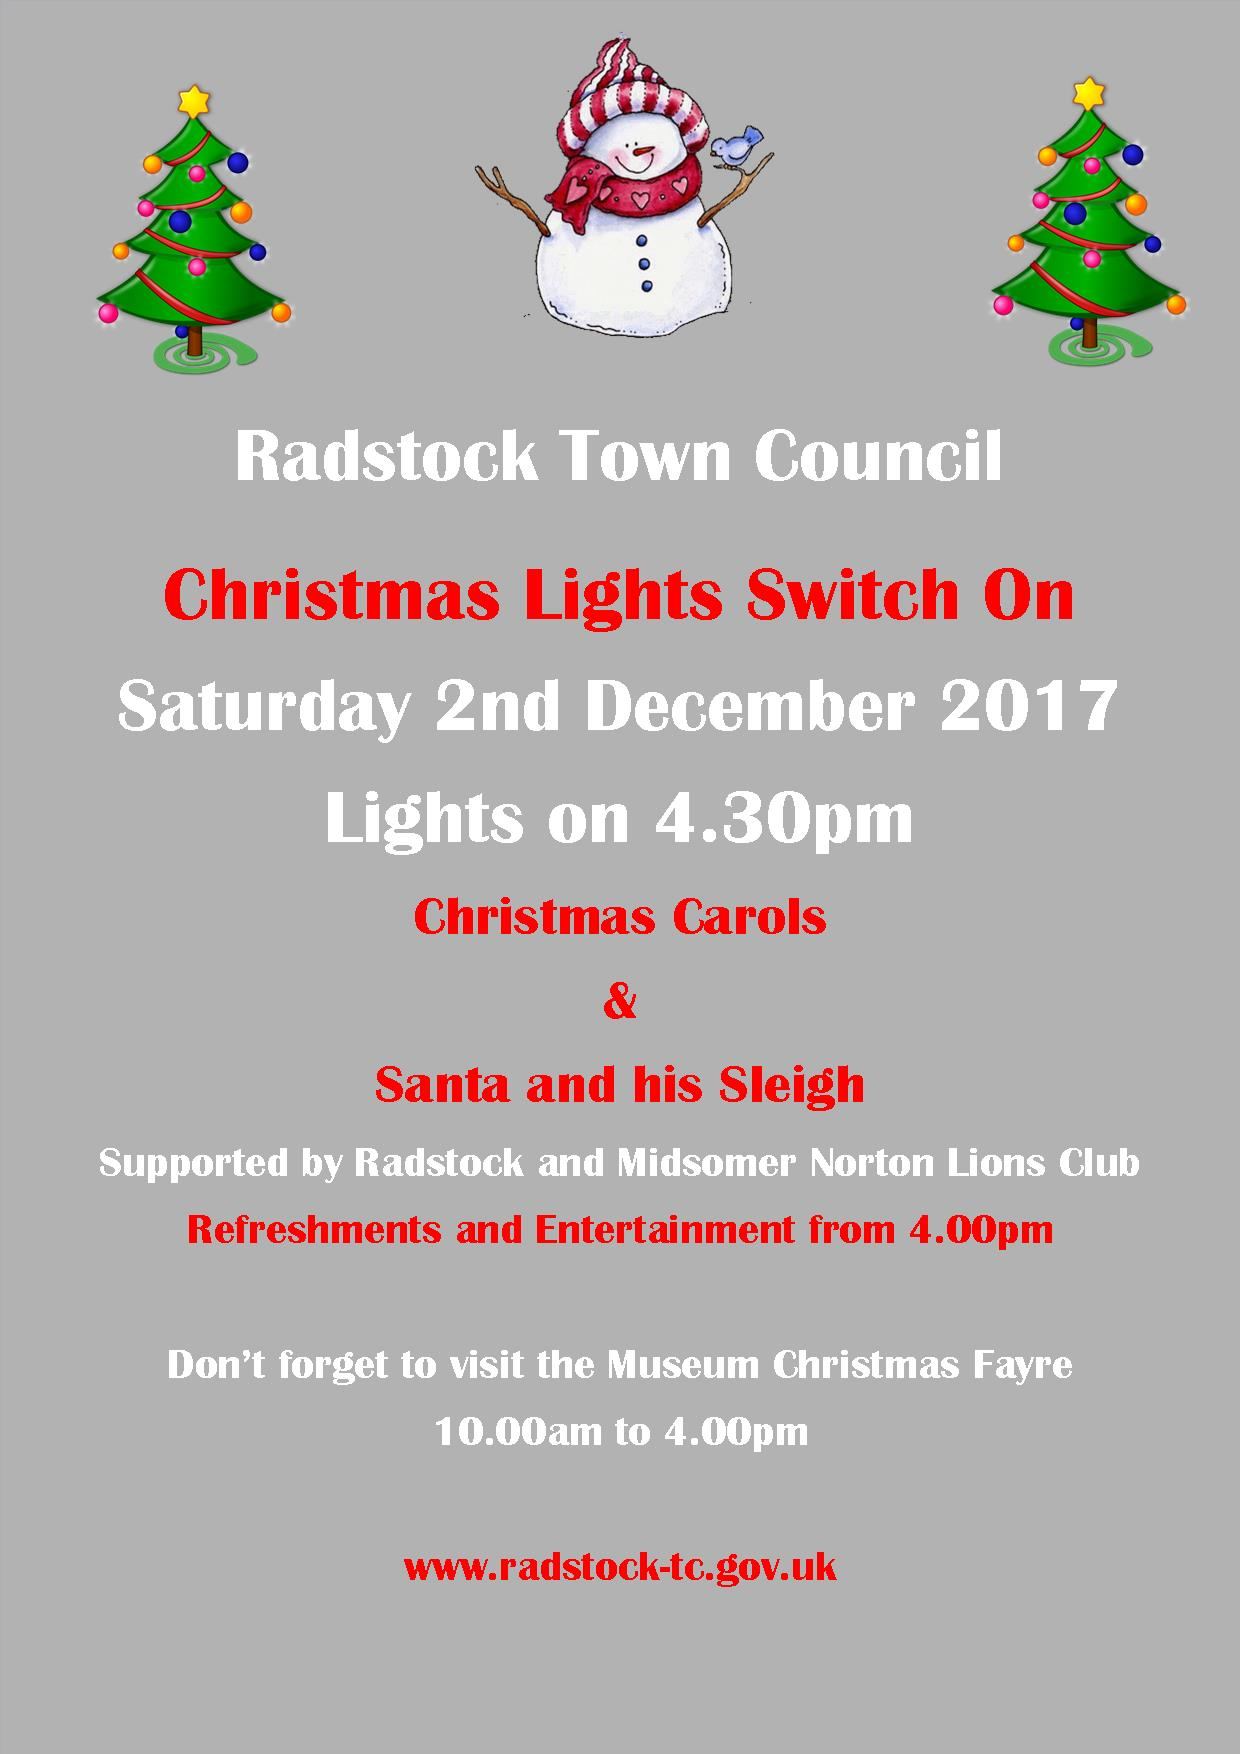 Christmas Lights Switch On Website